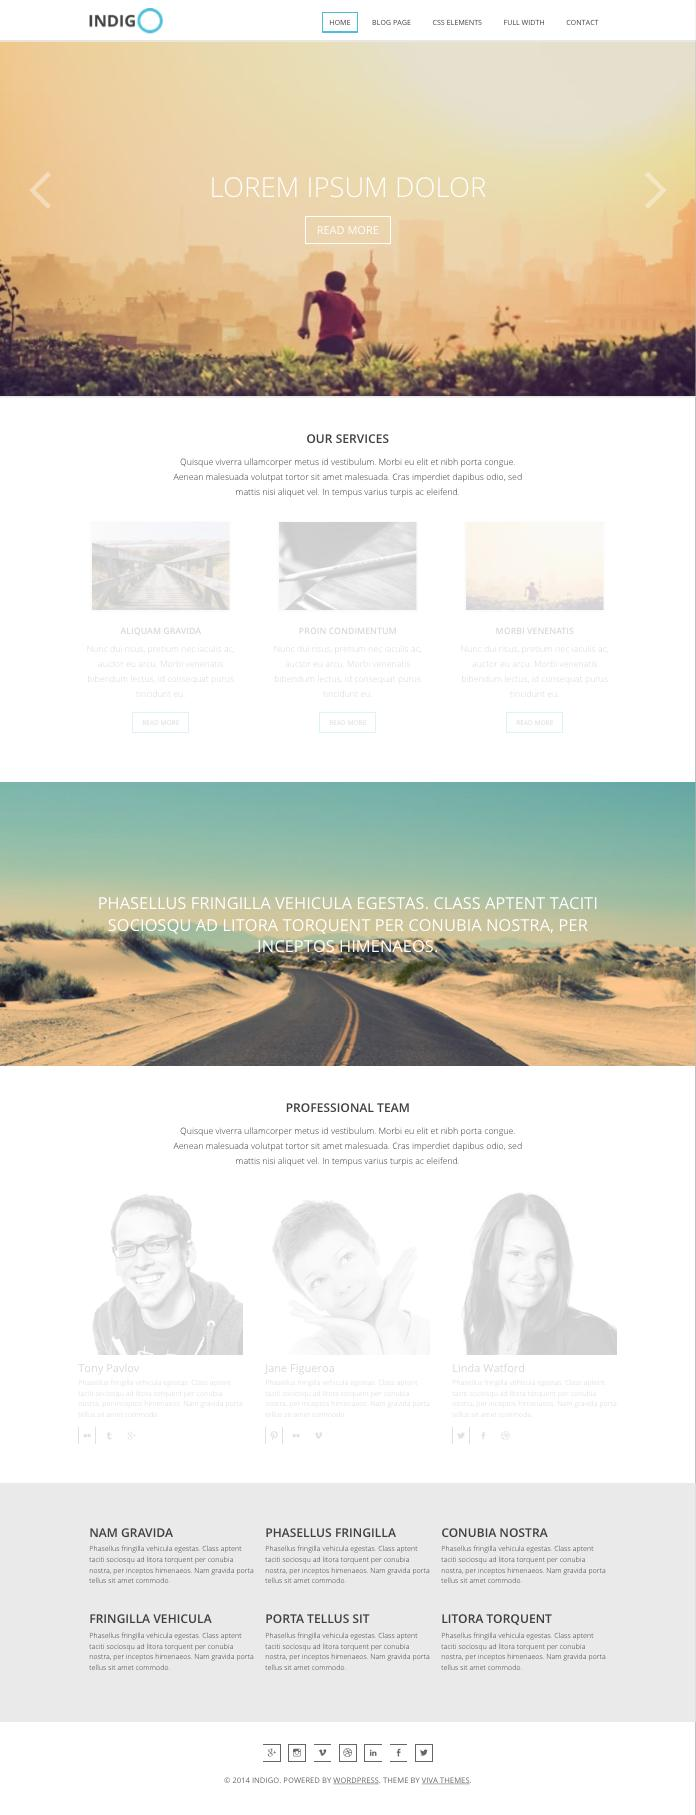 Indigo WordPress Parallax Effect Theme